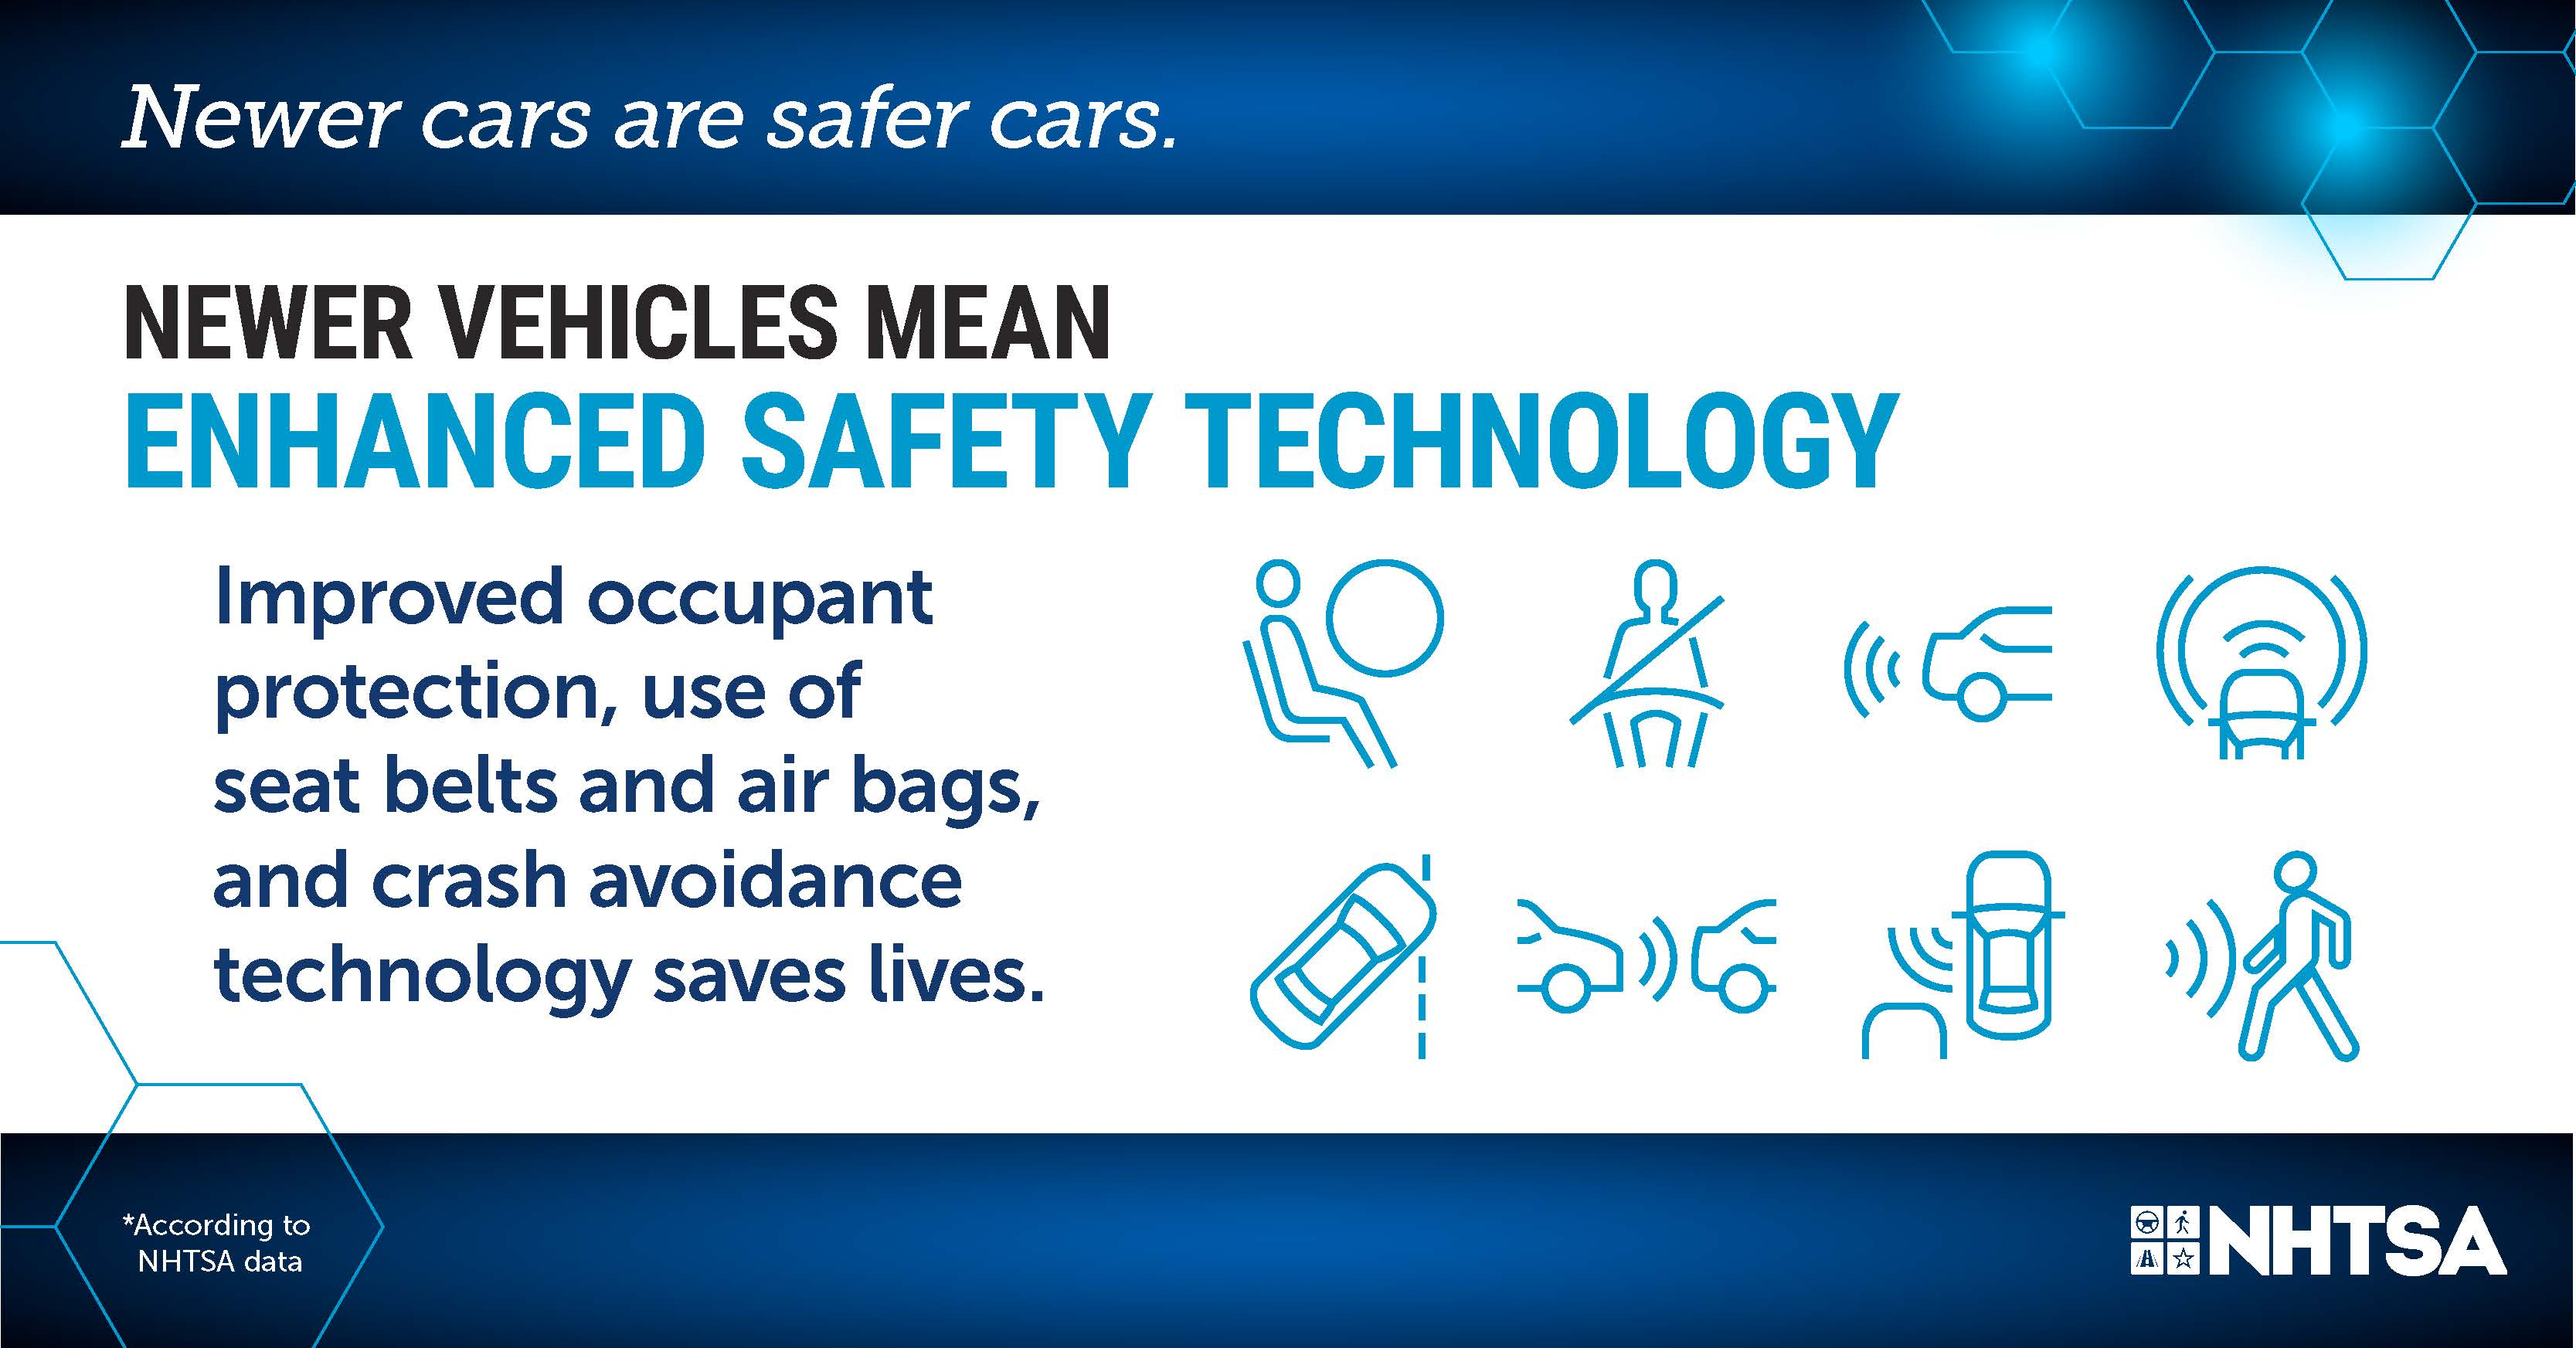 Newer vehicles mean enhanced safety technology. Improved occupant protection, use of seat belts and air bags, and crash avoidance technology saves lives.